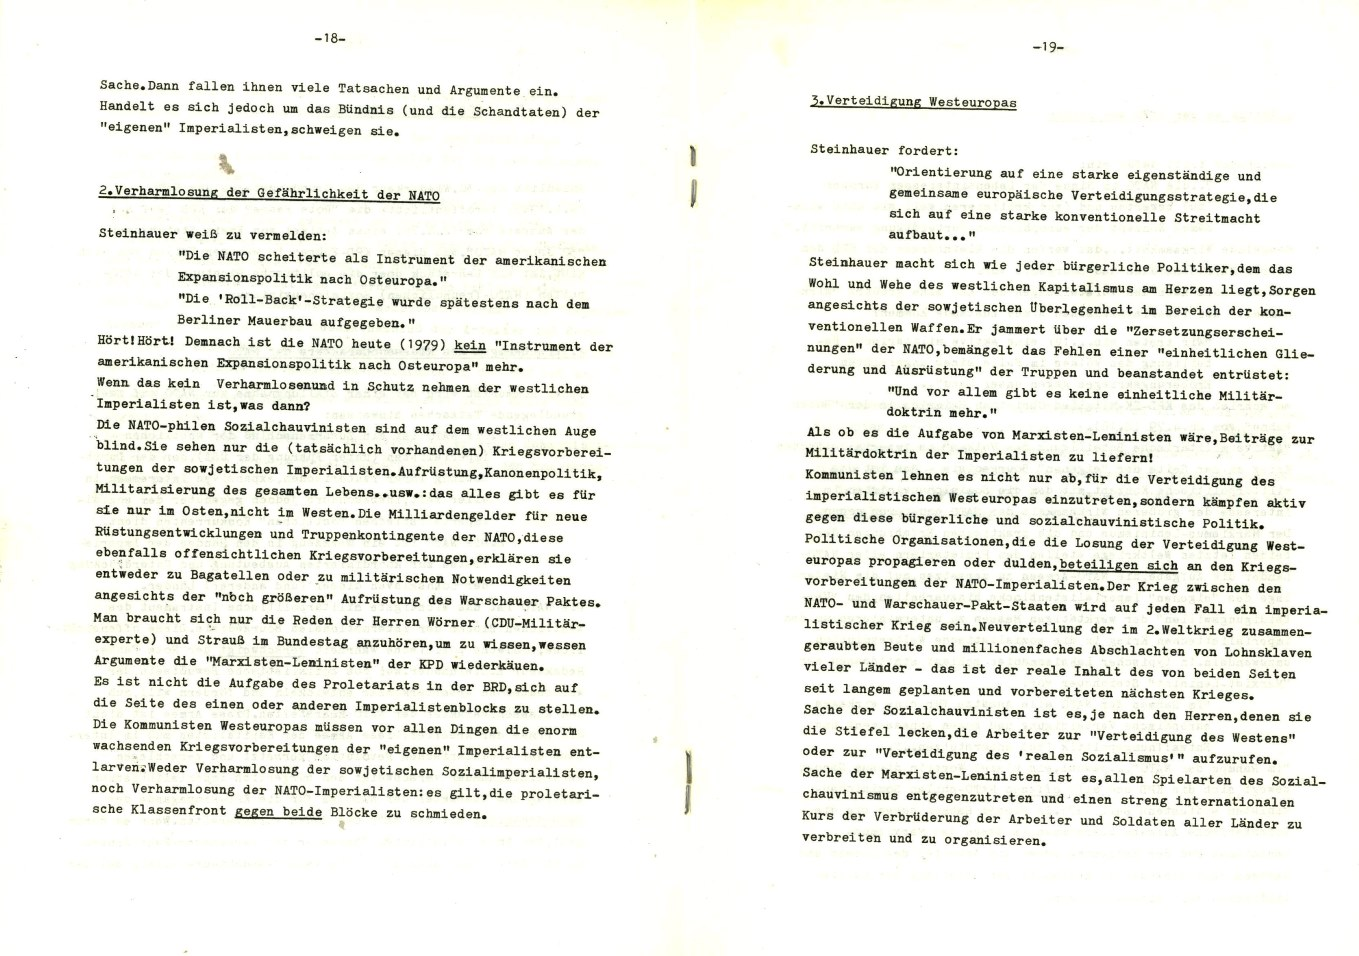 Muenchen_Kampf_dem_Revisionismus_1979_10_10